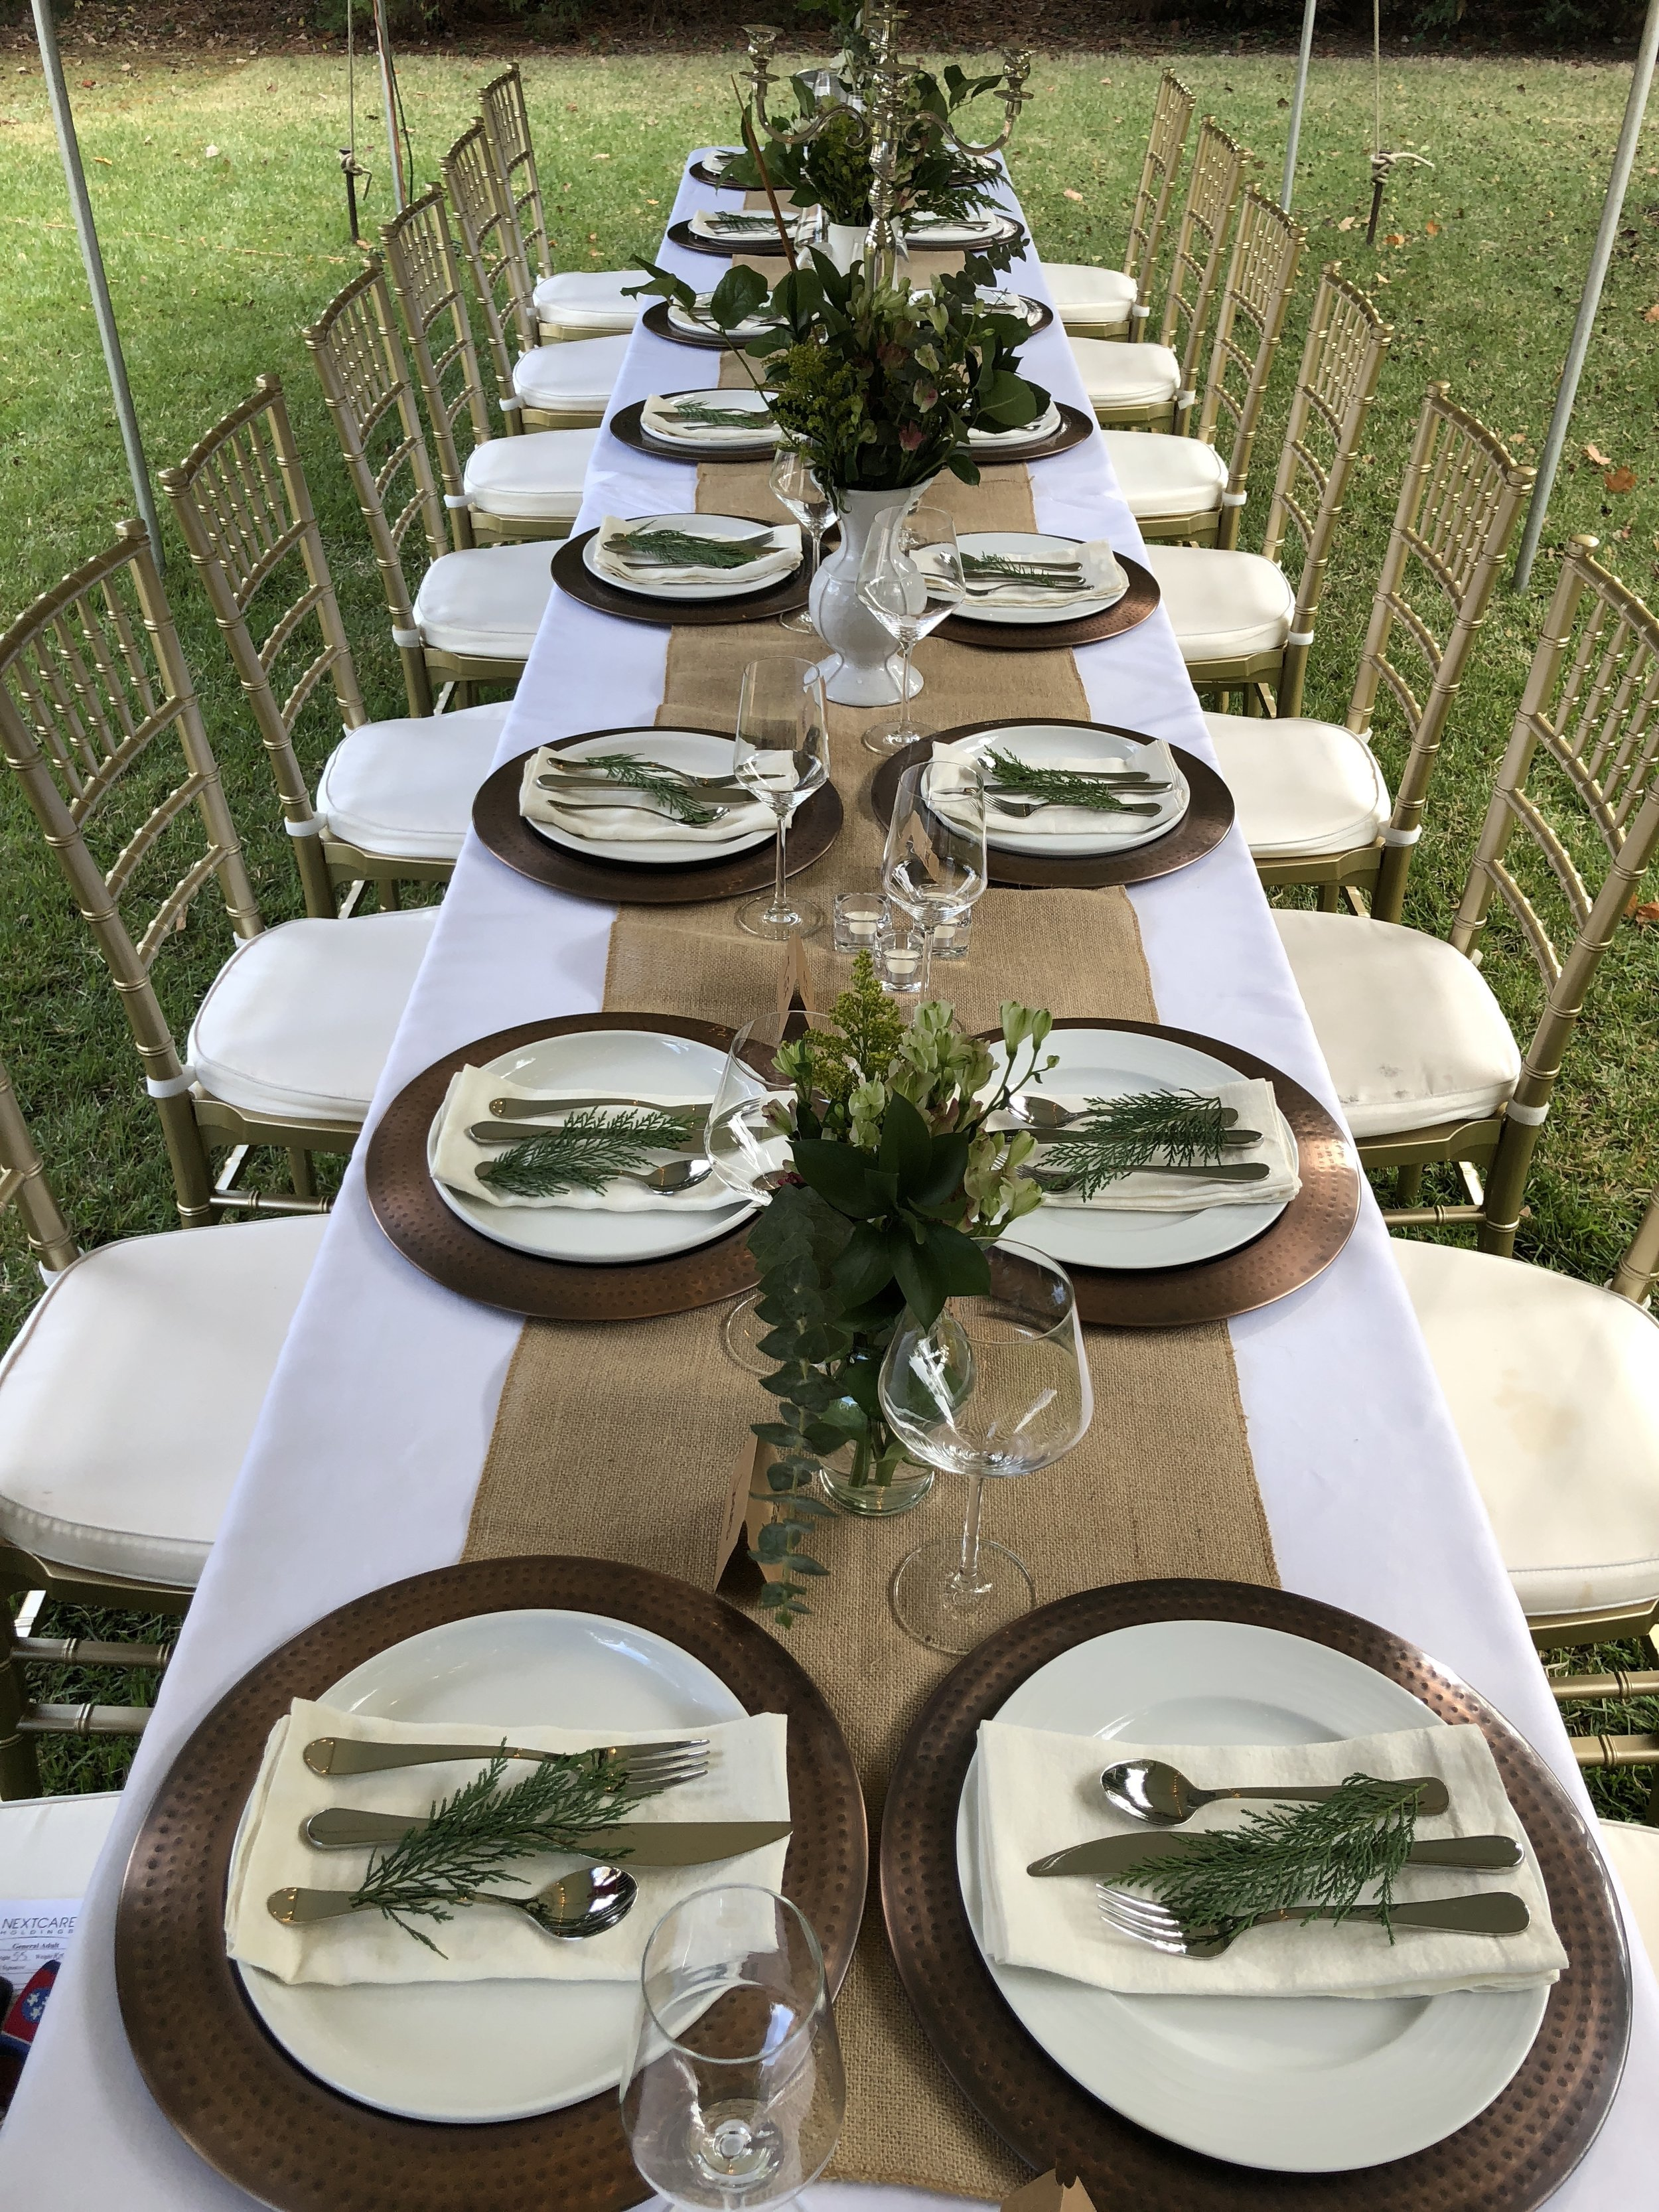 al fresco…..there's nothing better than dinner with friends outdoors at the Broadfoot Bandy House